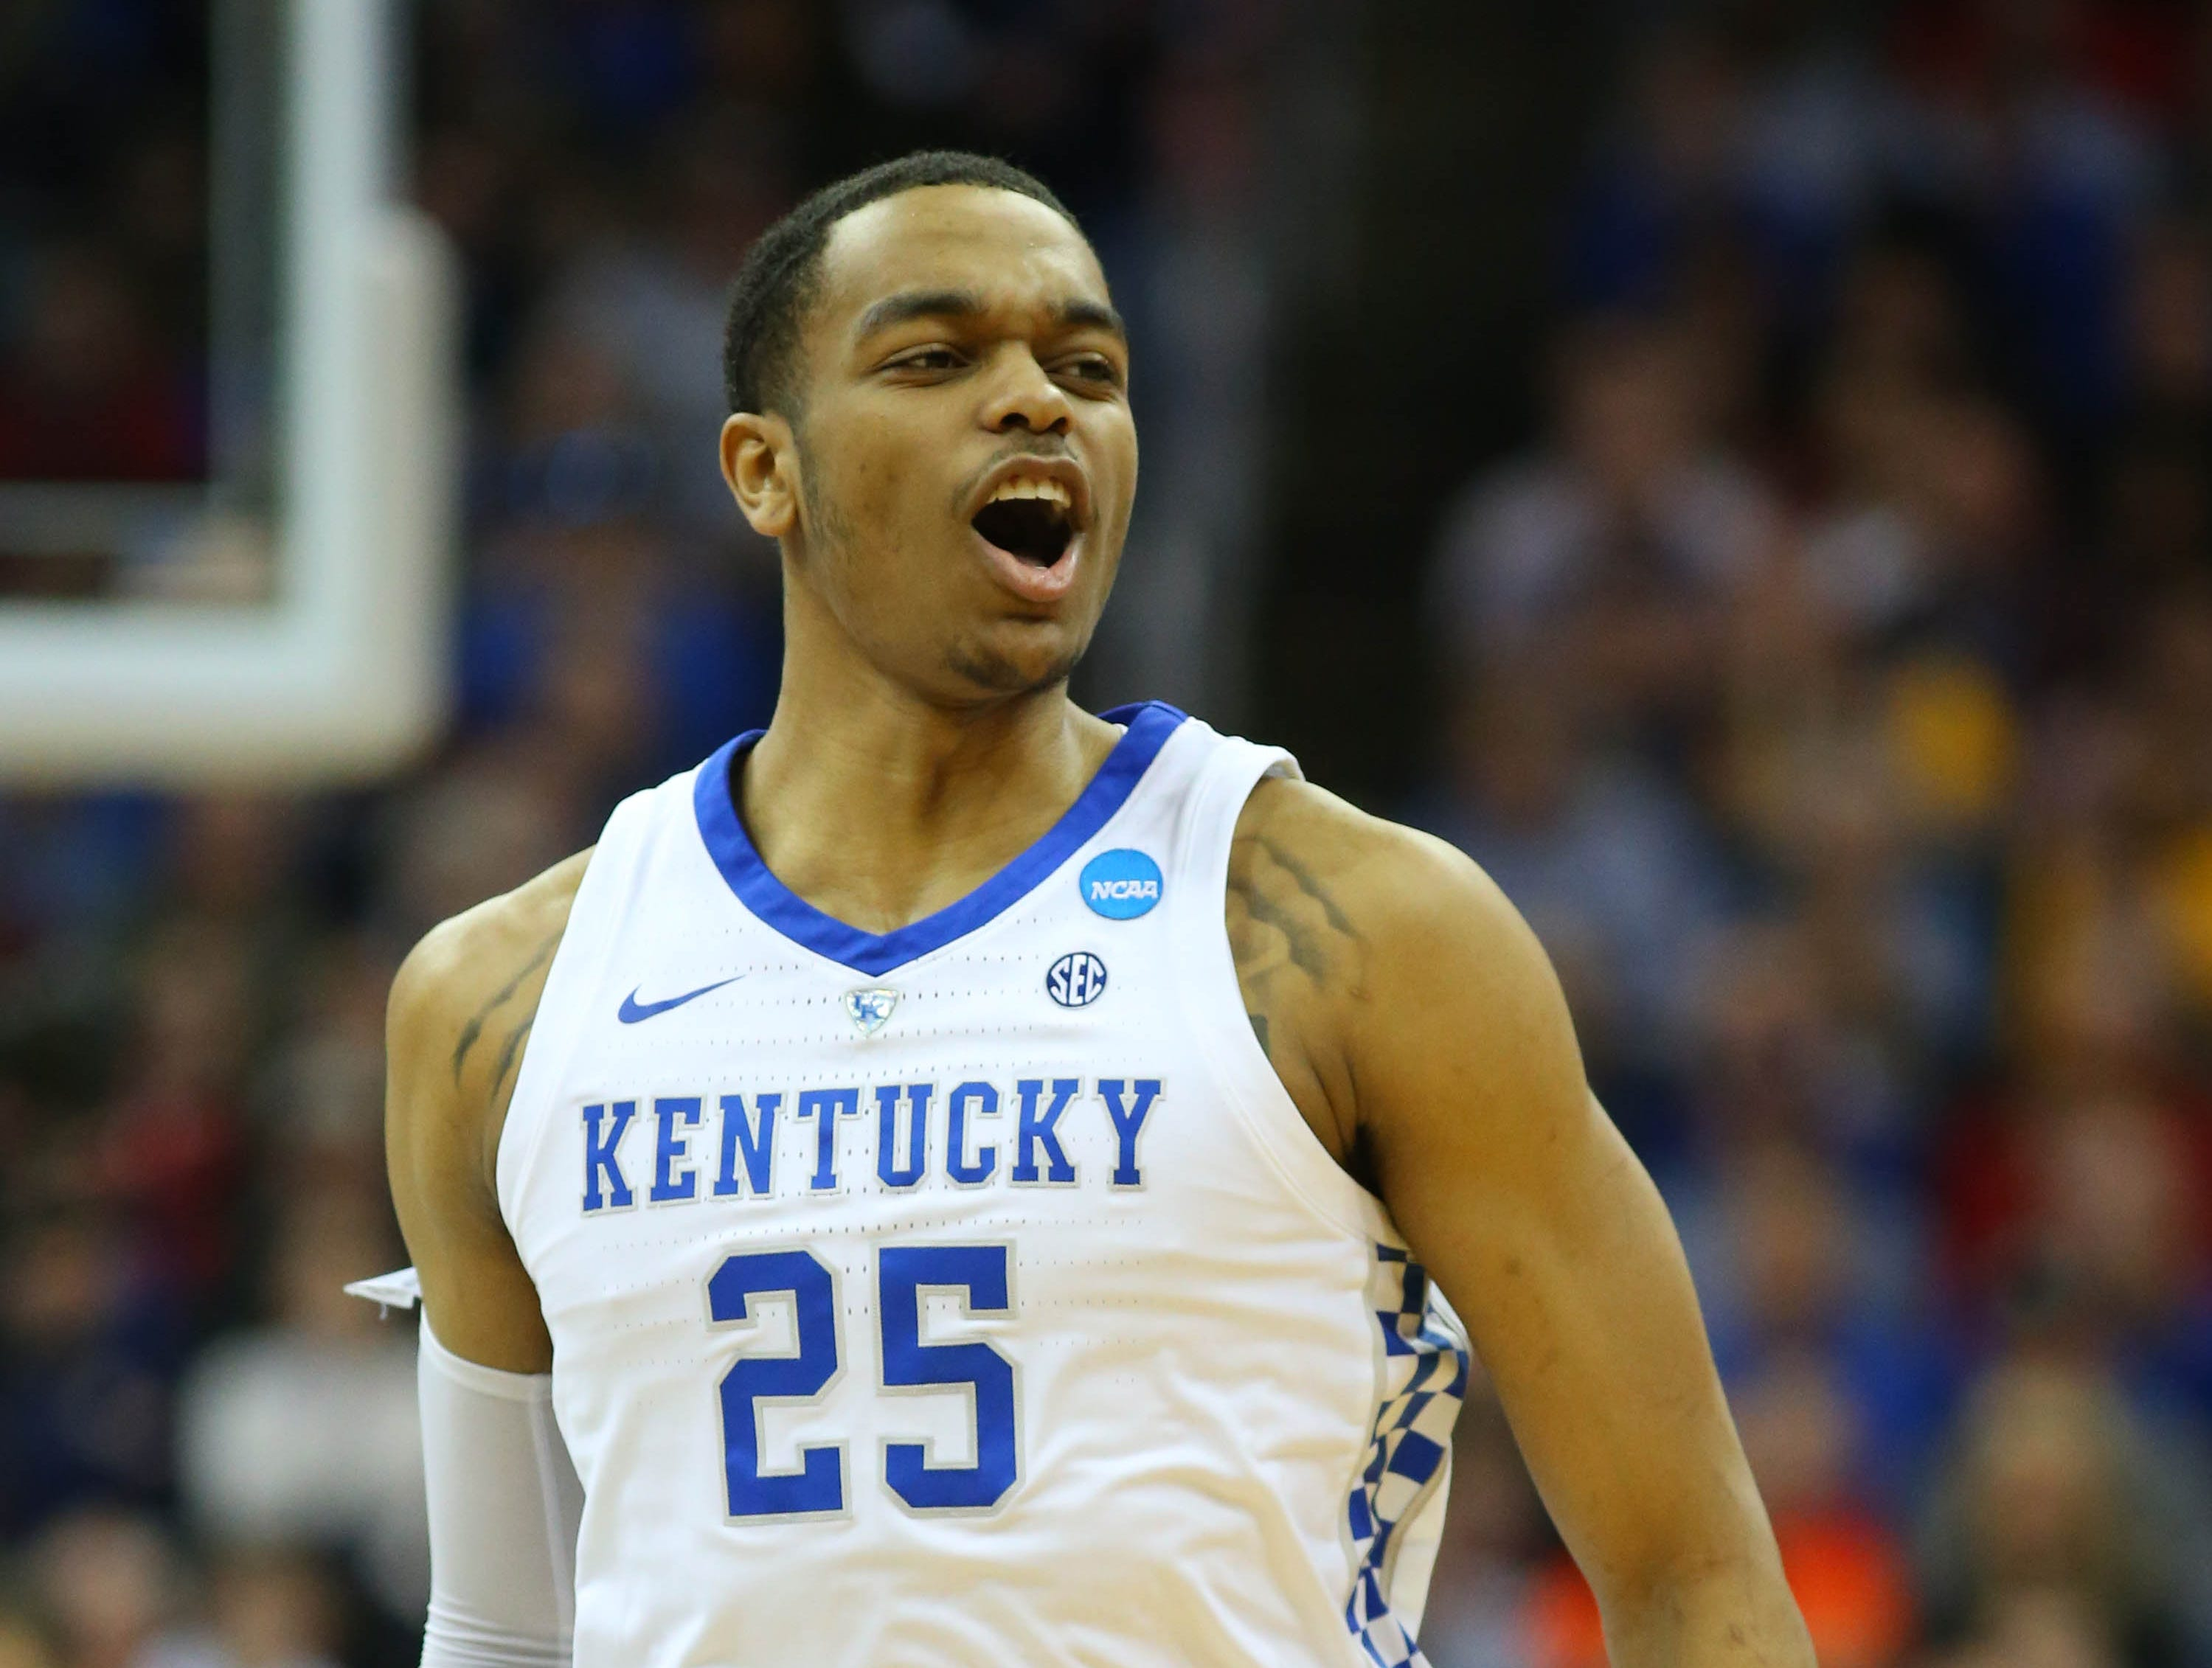 Mar 31, 2019; Kansas City, MO, United States; Kentucky Wildcats forward PJ Washington (25) reacts against the Auburn Tigers during the first half in the championship game of the midwest regional of the 2019 NCAA Tournament at Sprint Center. Mandatory Credit: Jay Biggerstaff-USA TODAY Sports